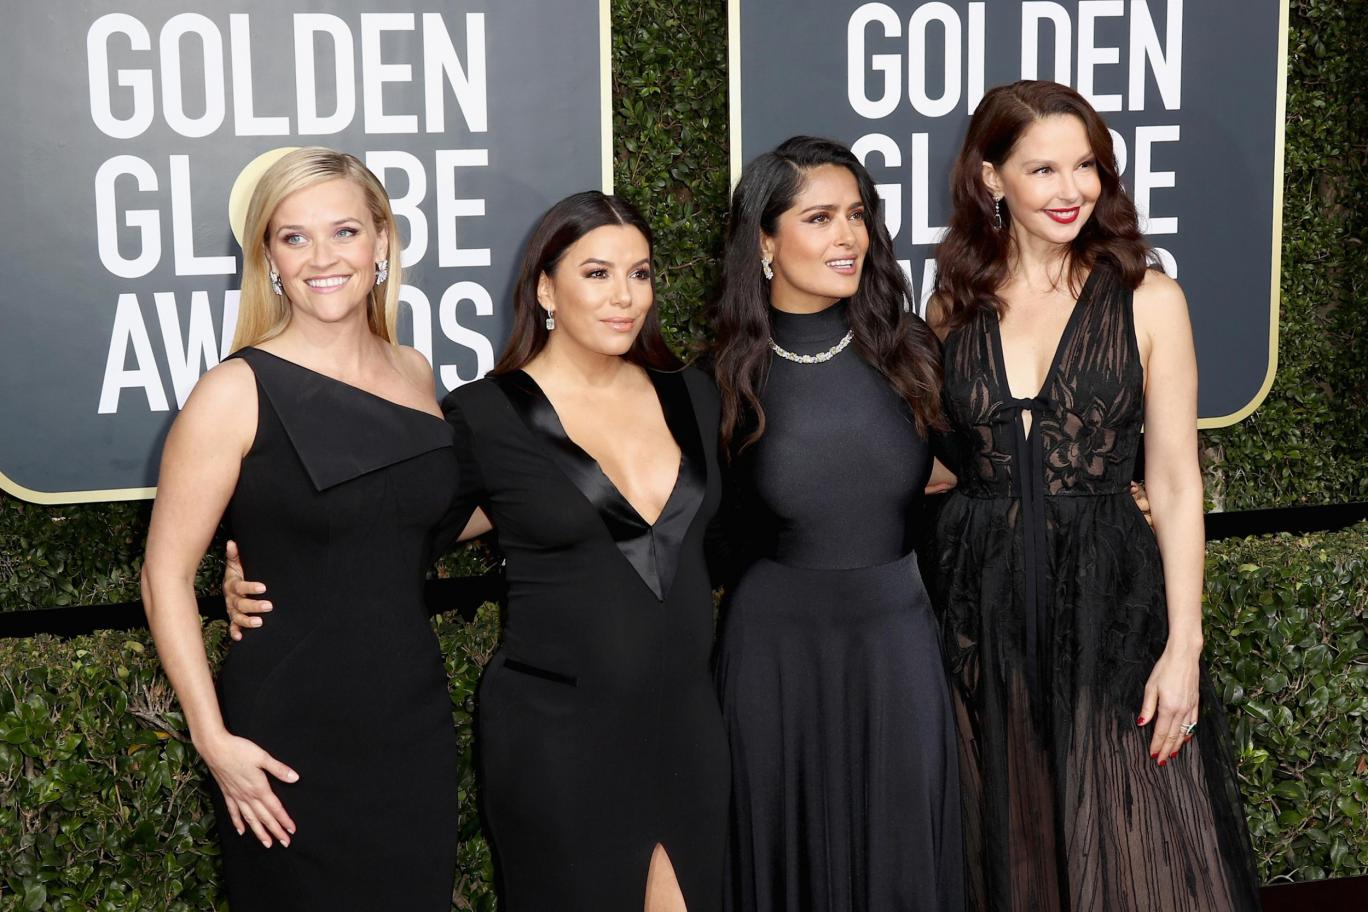 Time's Up! The 2018 Golden Globes' Branded In Reclamation, Inclusivity and Purpose